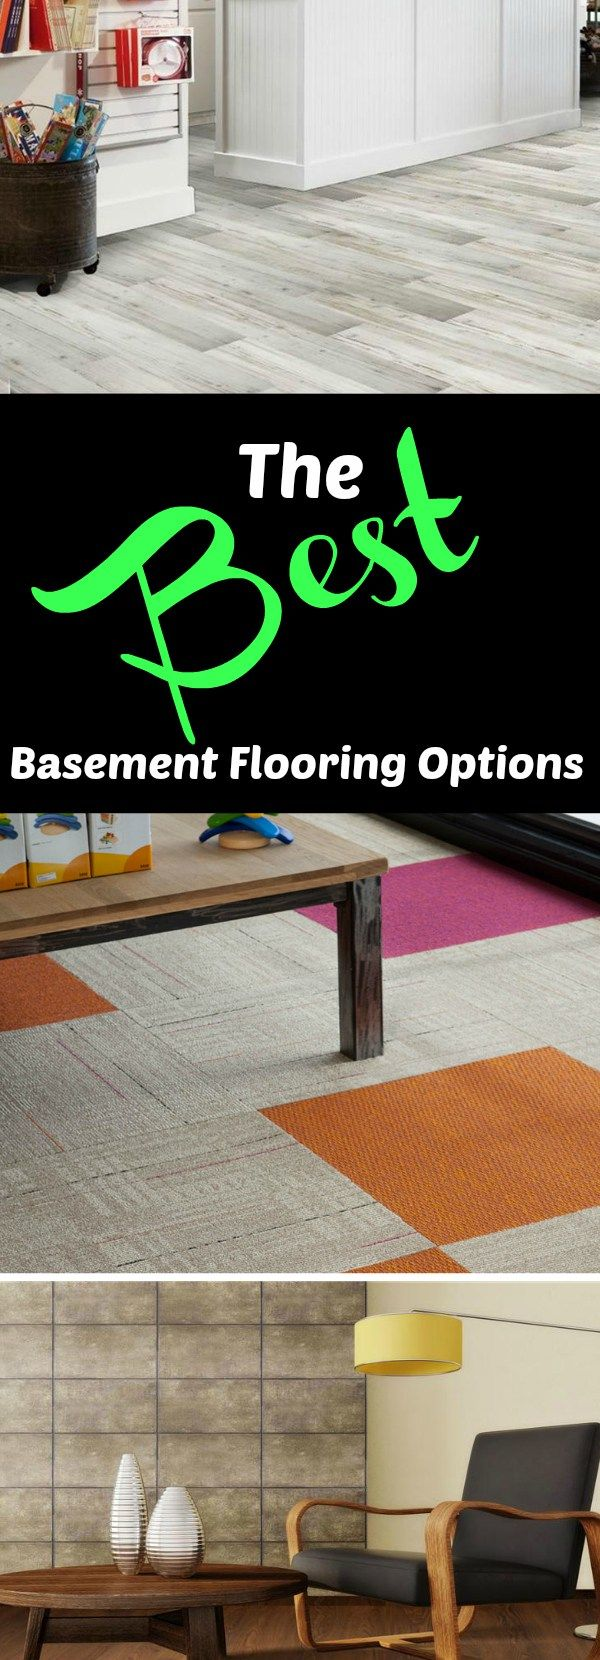 The Best Basement Flooring Options: Discover the best, trendiest and affordable…